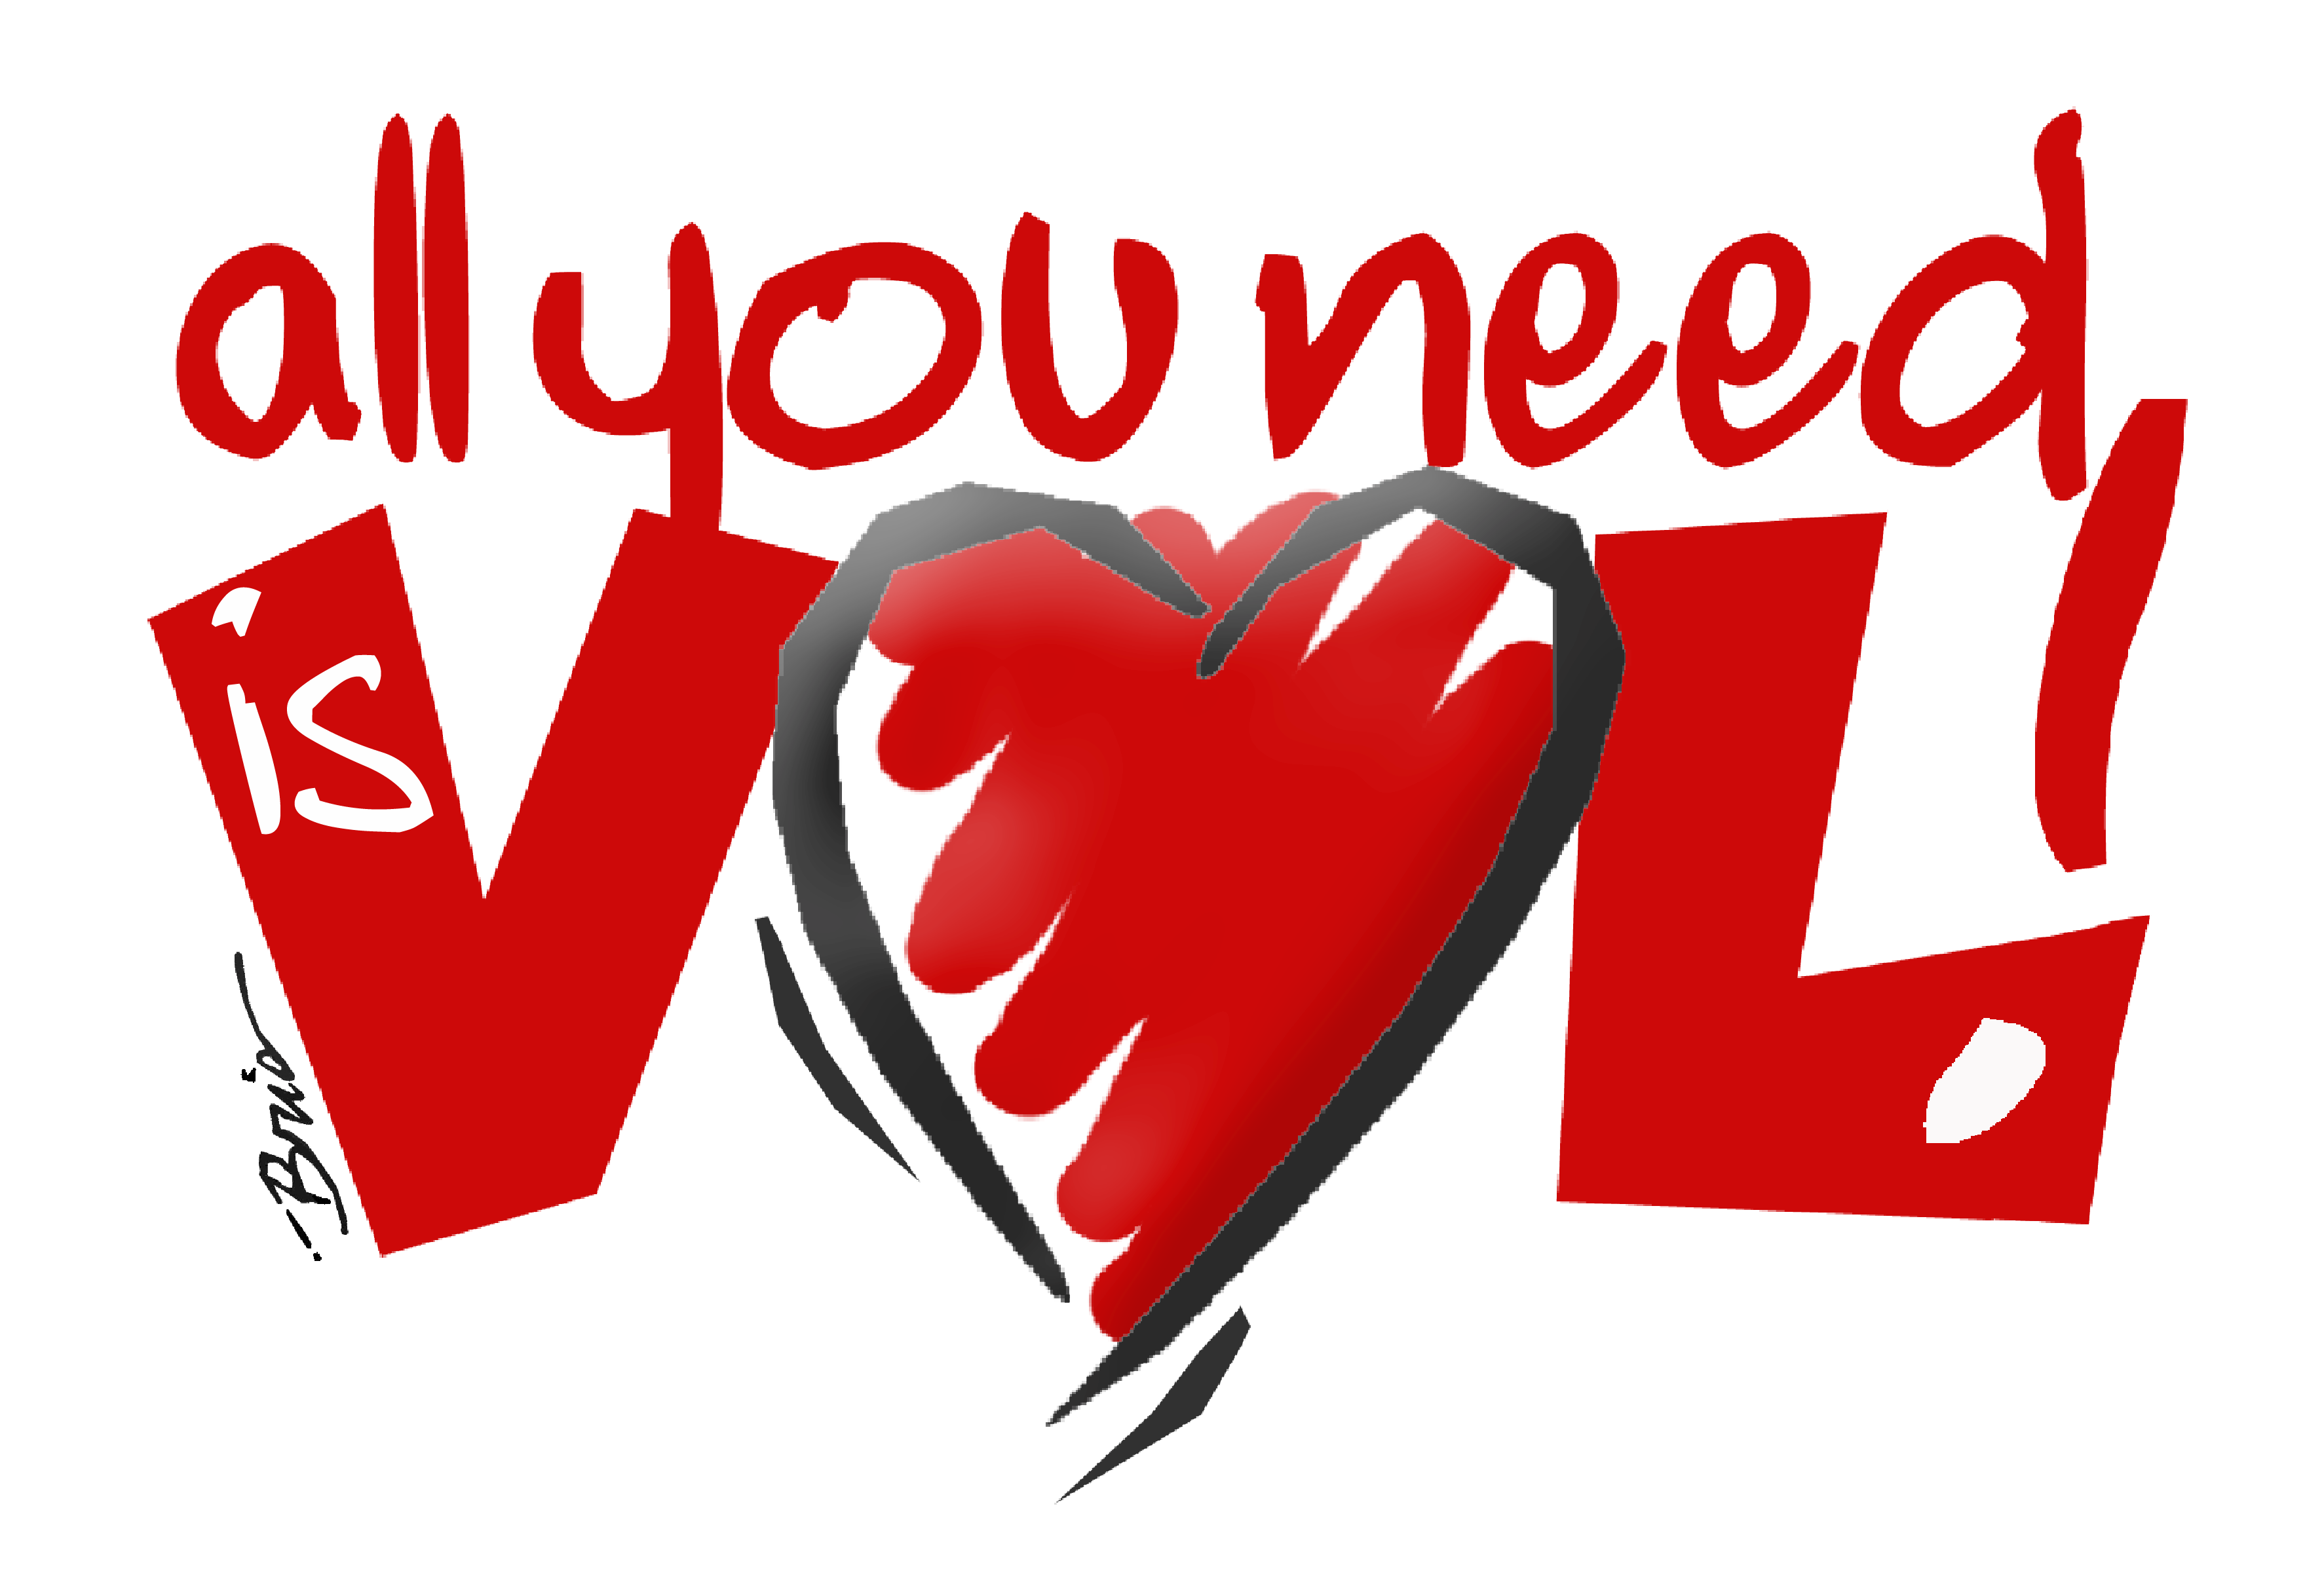 All You Need is VOL!